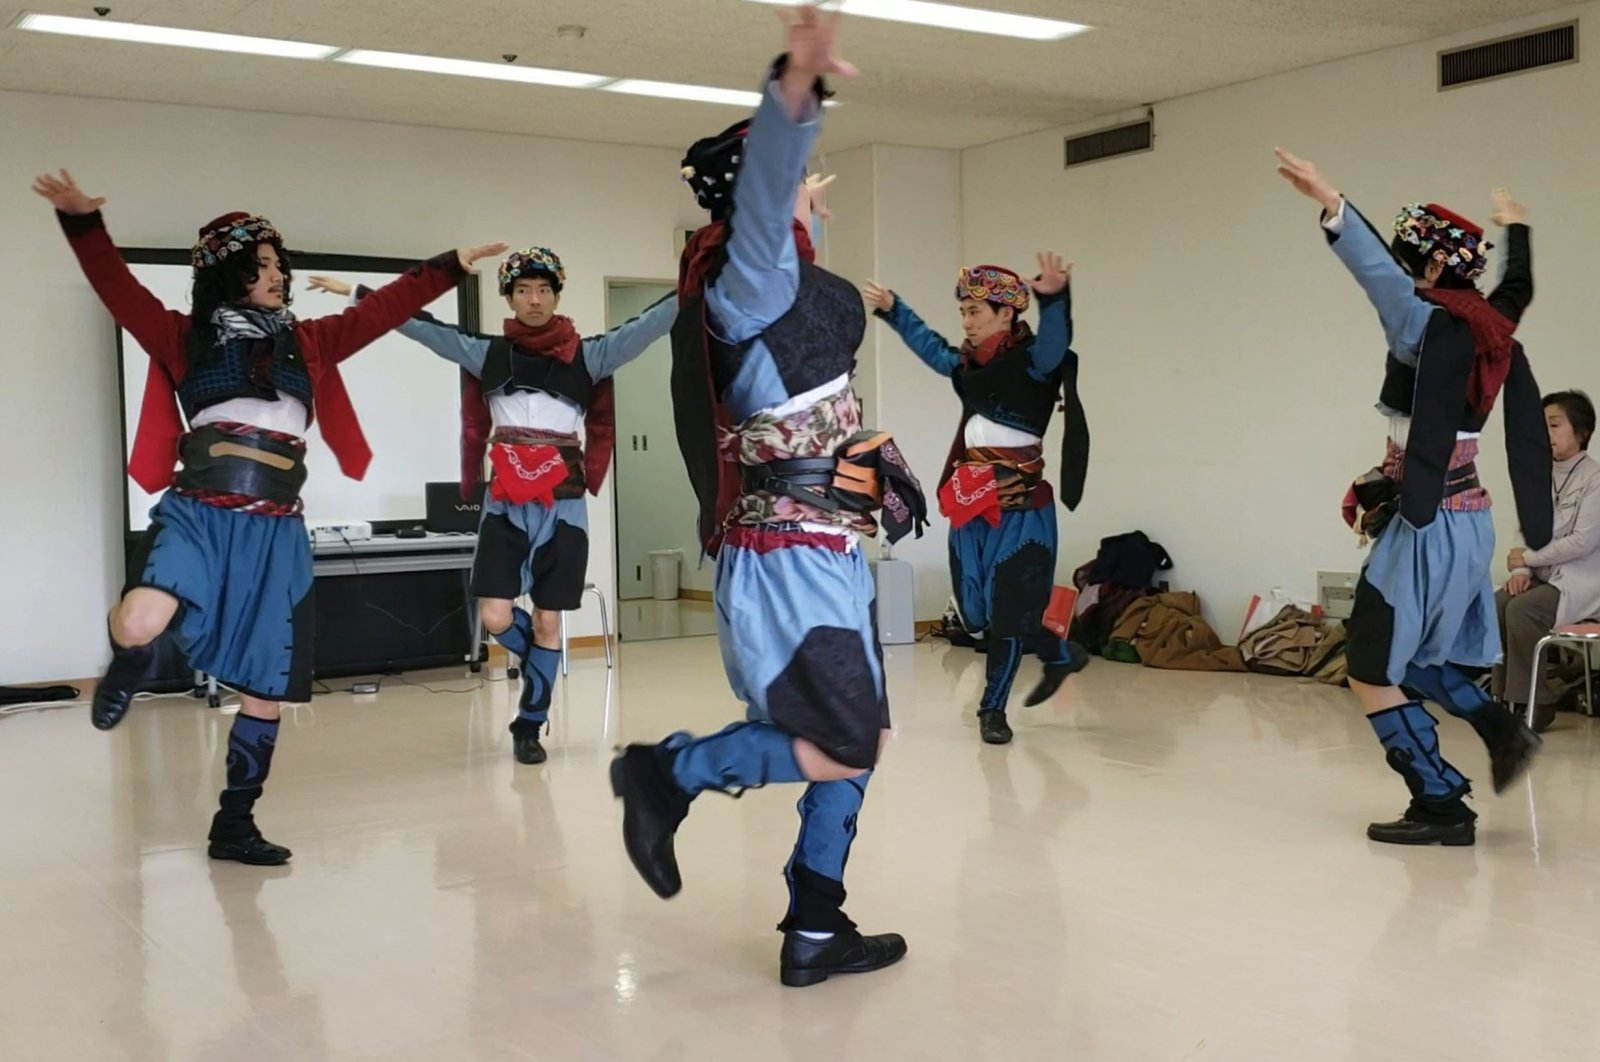 Still shot from the video of Takasaki Taito and his friends performing the Zeybek dance. (AA Photo)